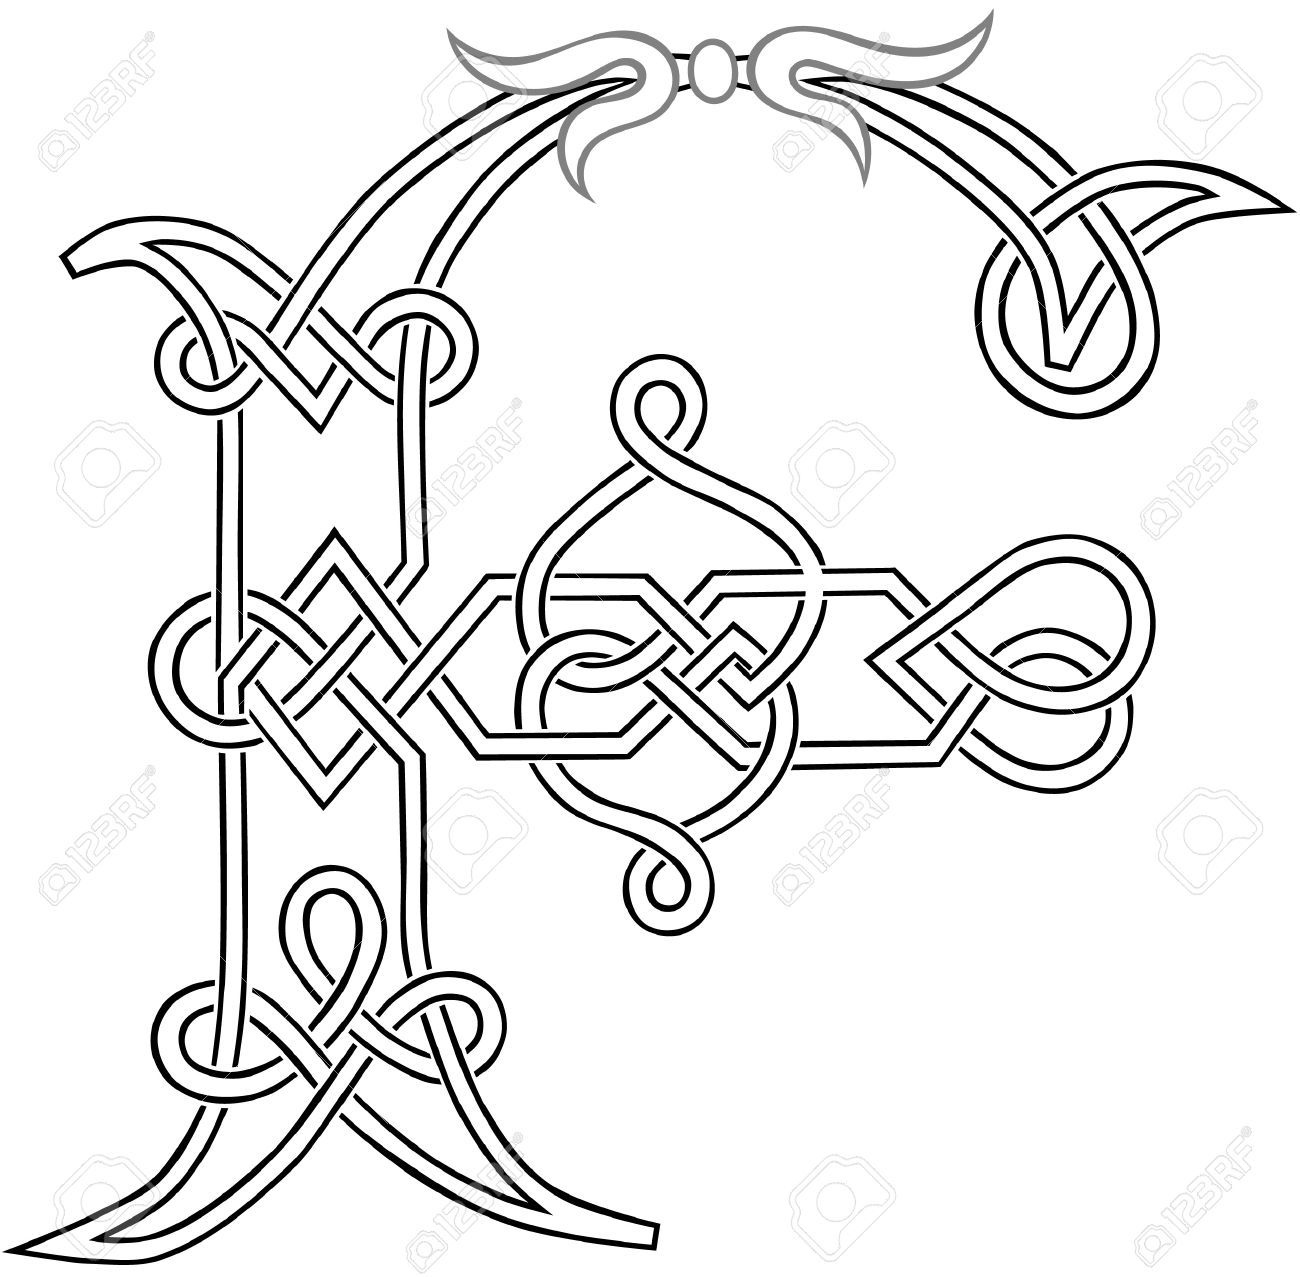 A Celtic Knot-work Capital Letter F Stylized Outline Royalty Free ...